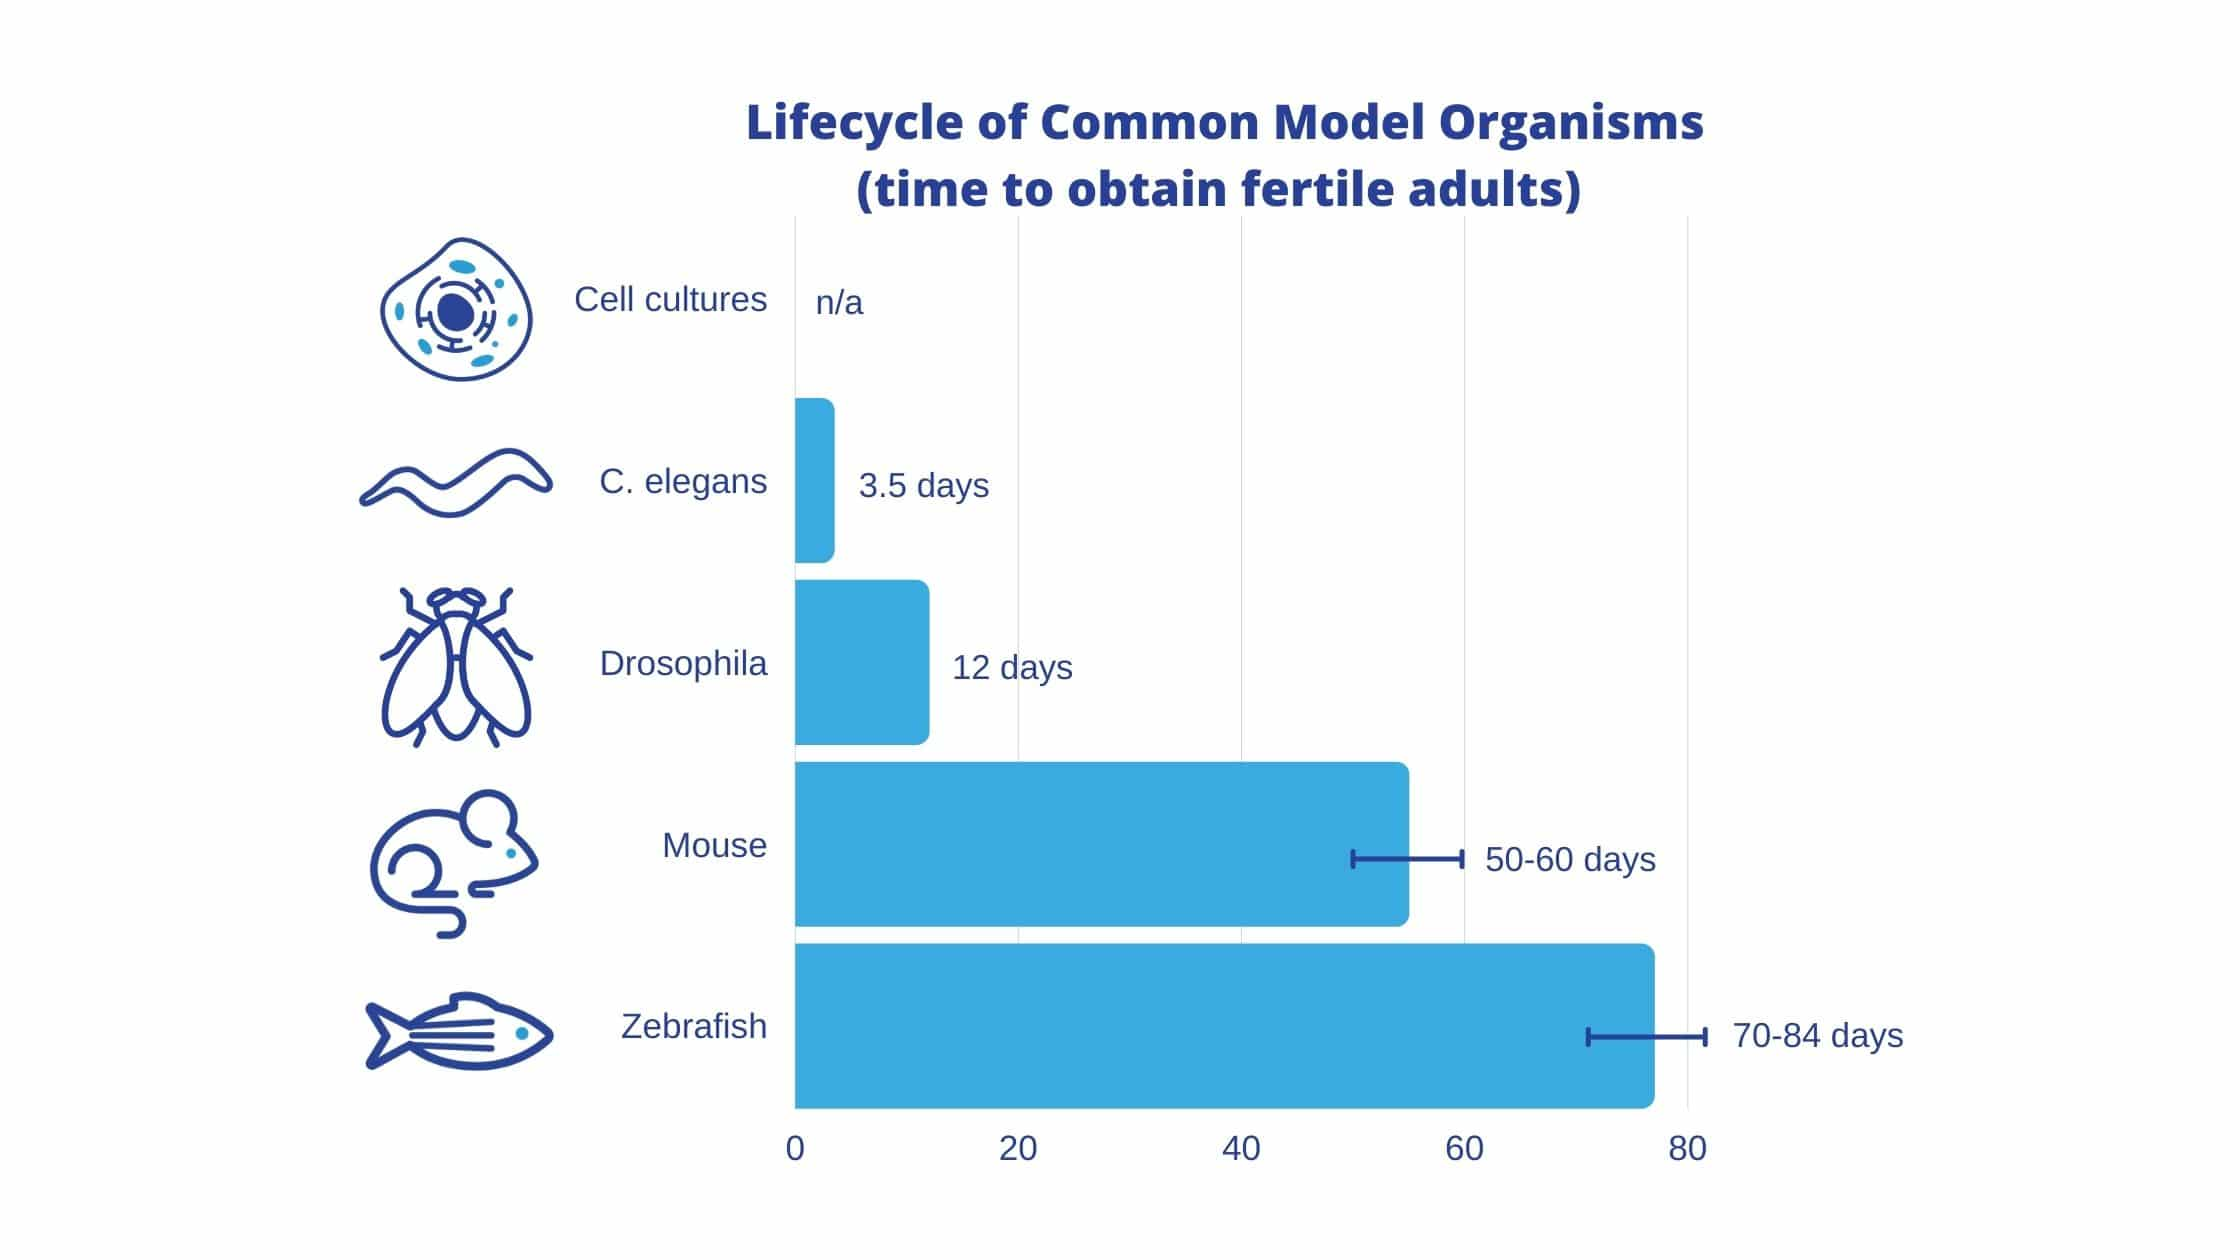 Lifecycle comparison of common model organisms